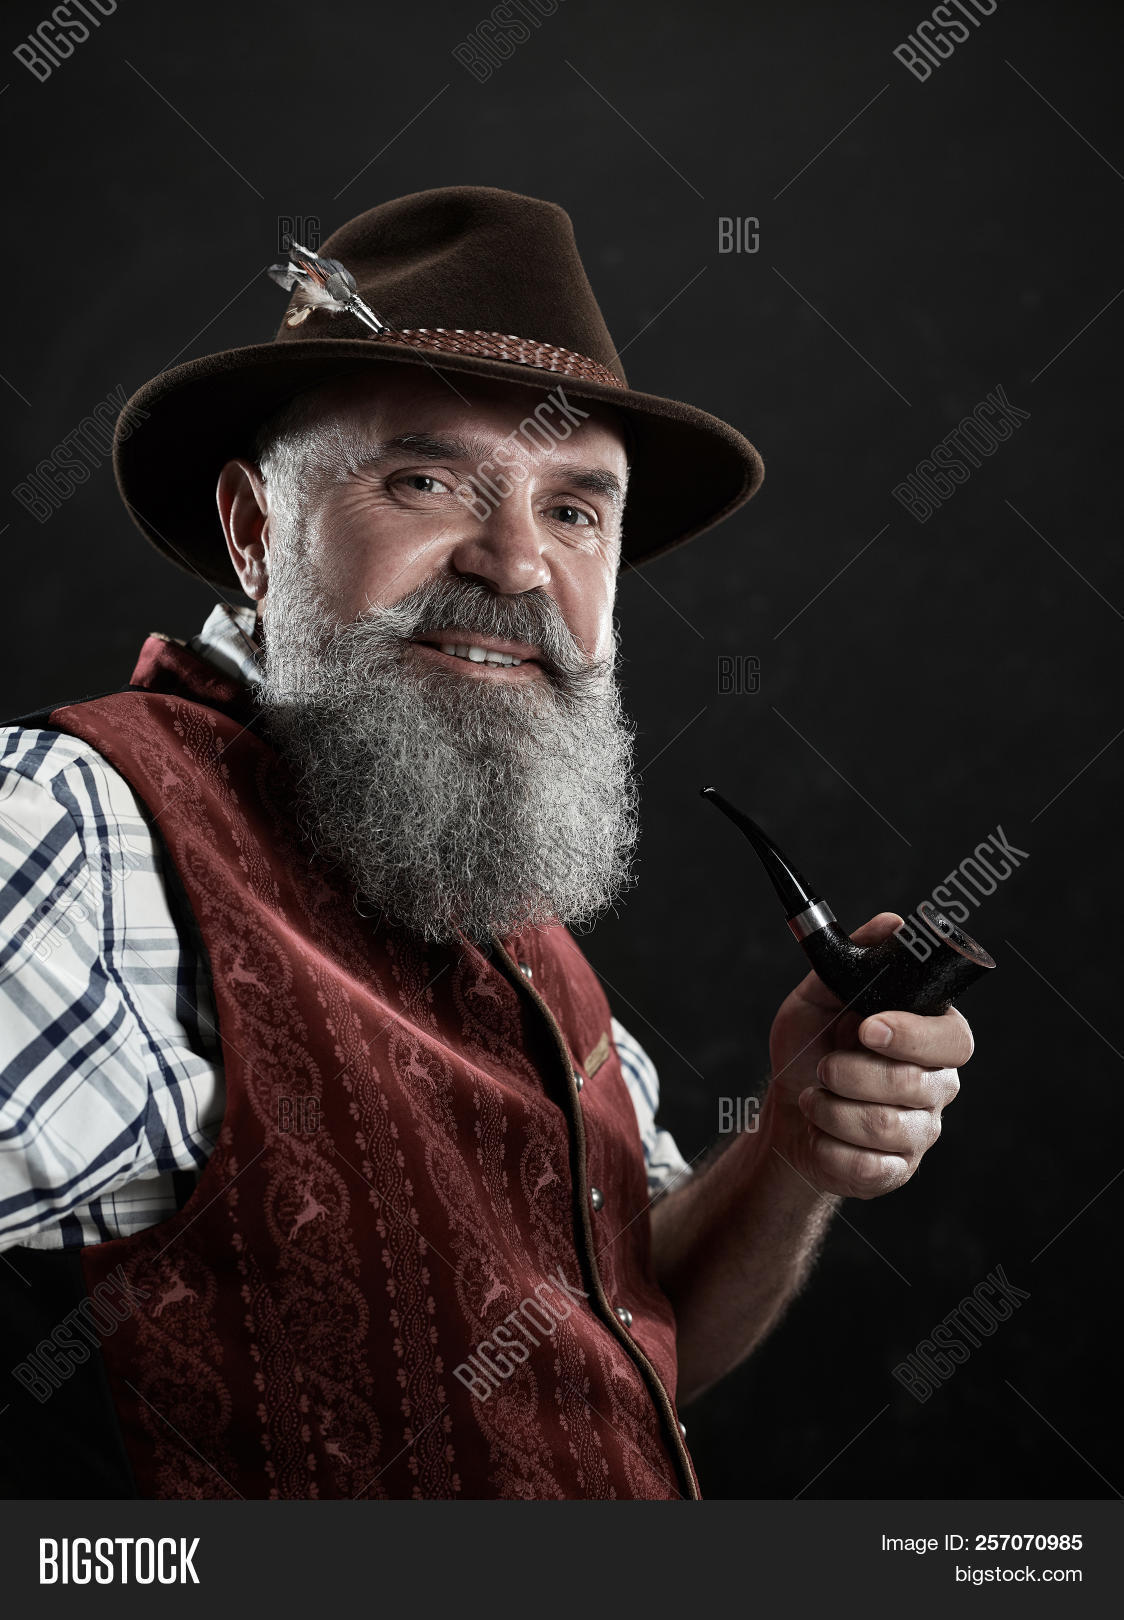 Austrian,Bavaria,Bavarian,German,Tyrolean,adult,aged,background,bald,beard,black,blazer,cap,caucasian,concerned,costume,darkness,elderly,european,expression,face,facial,feather,habit,hat,human,intelligent,male,man,mature,national,old,one,pensive,people,person,pipe,portrait,profile,senior,shirt,single,smile,smiling,smoke,thoughtful,tobacco,traditional,waistcoat,white